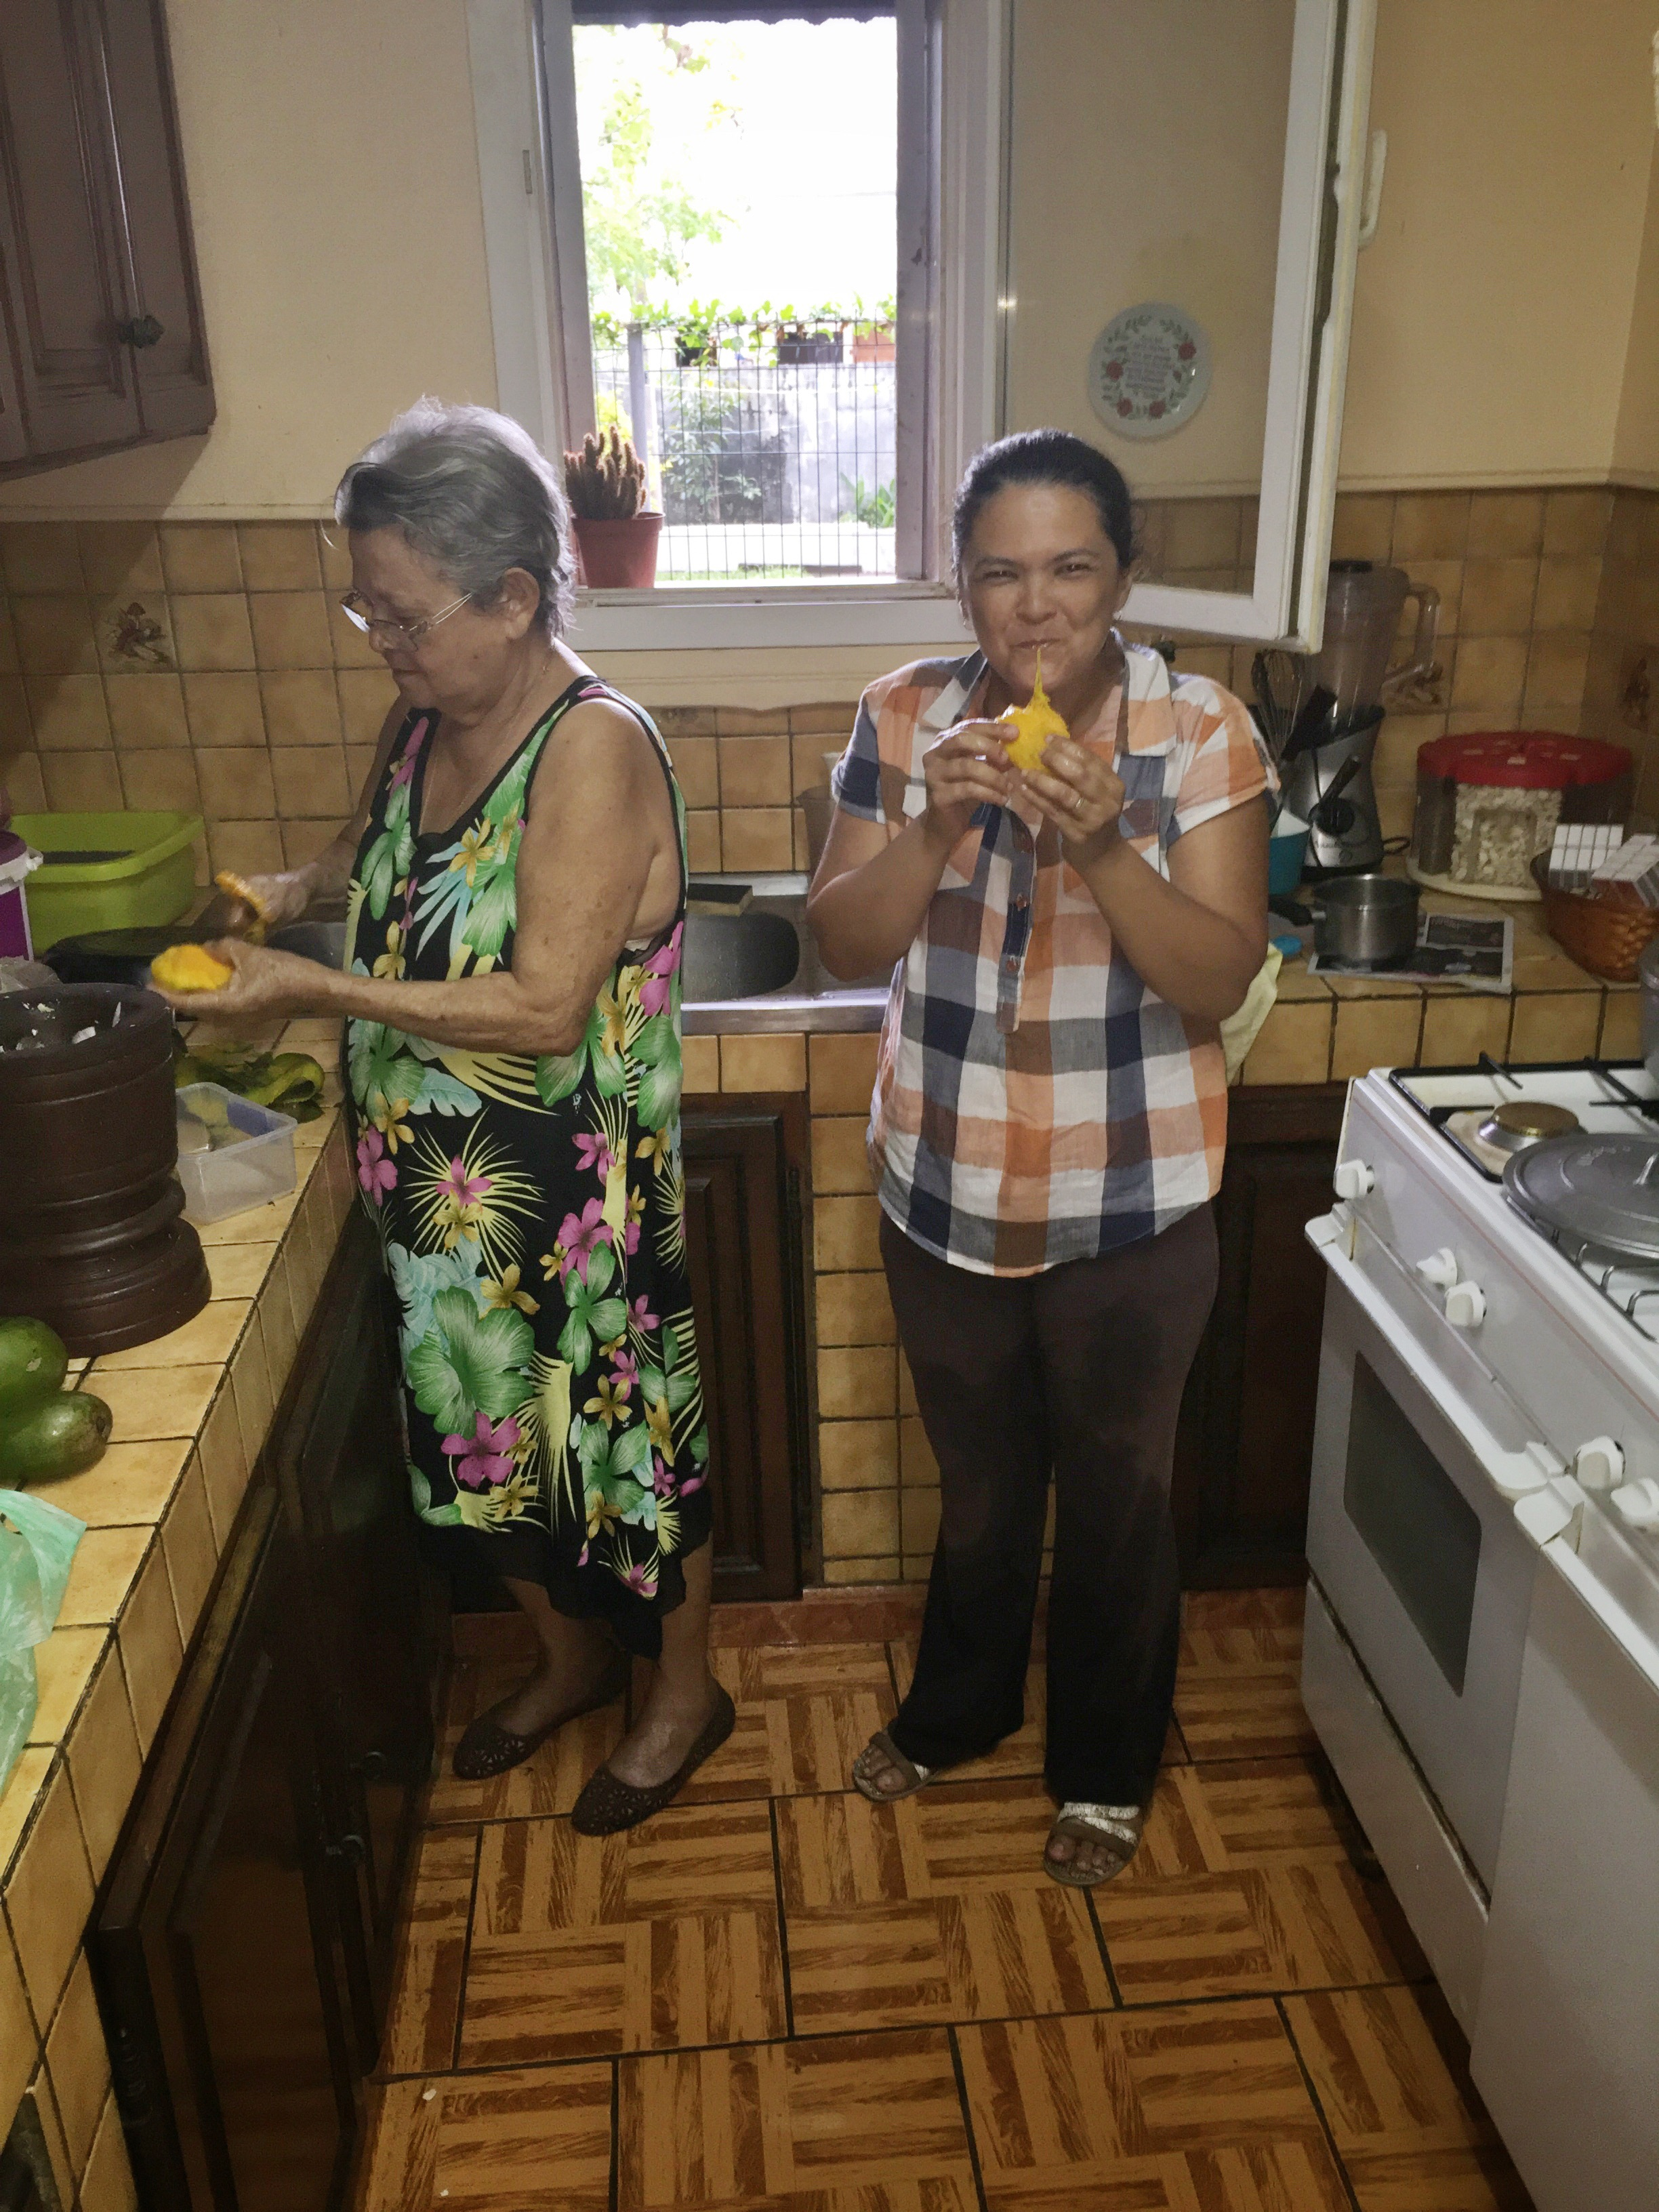 Tasting the green mangos to see if they can be used for the meal!